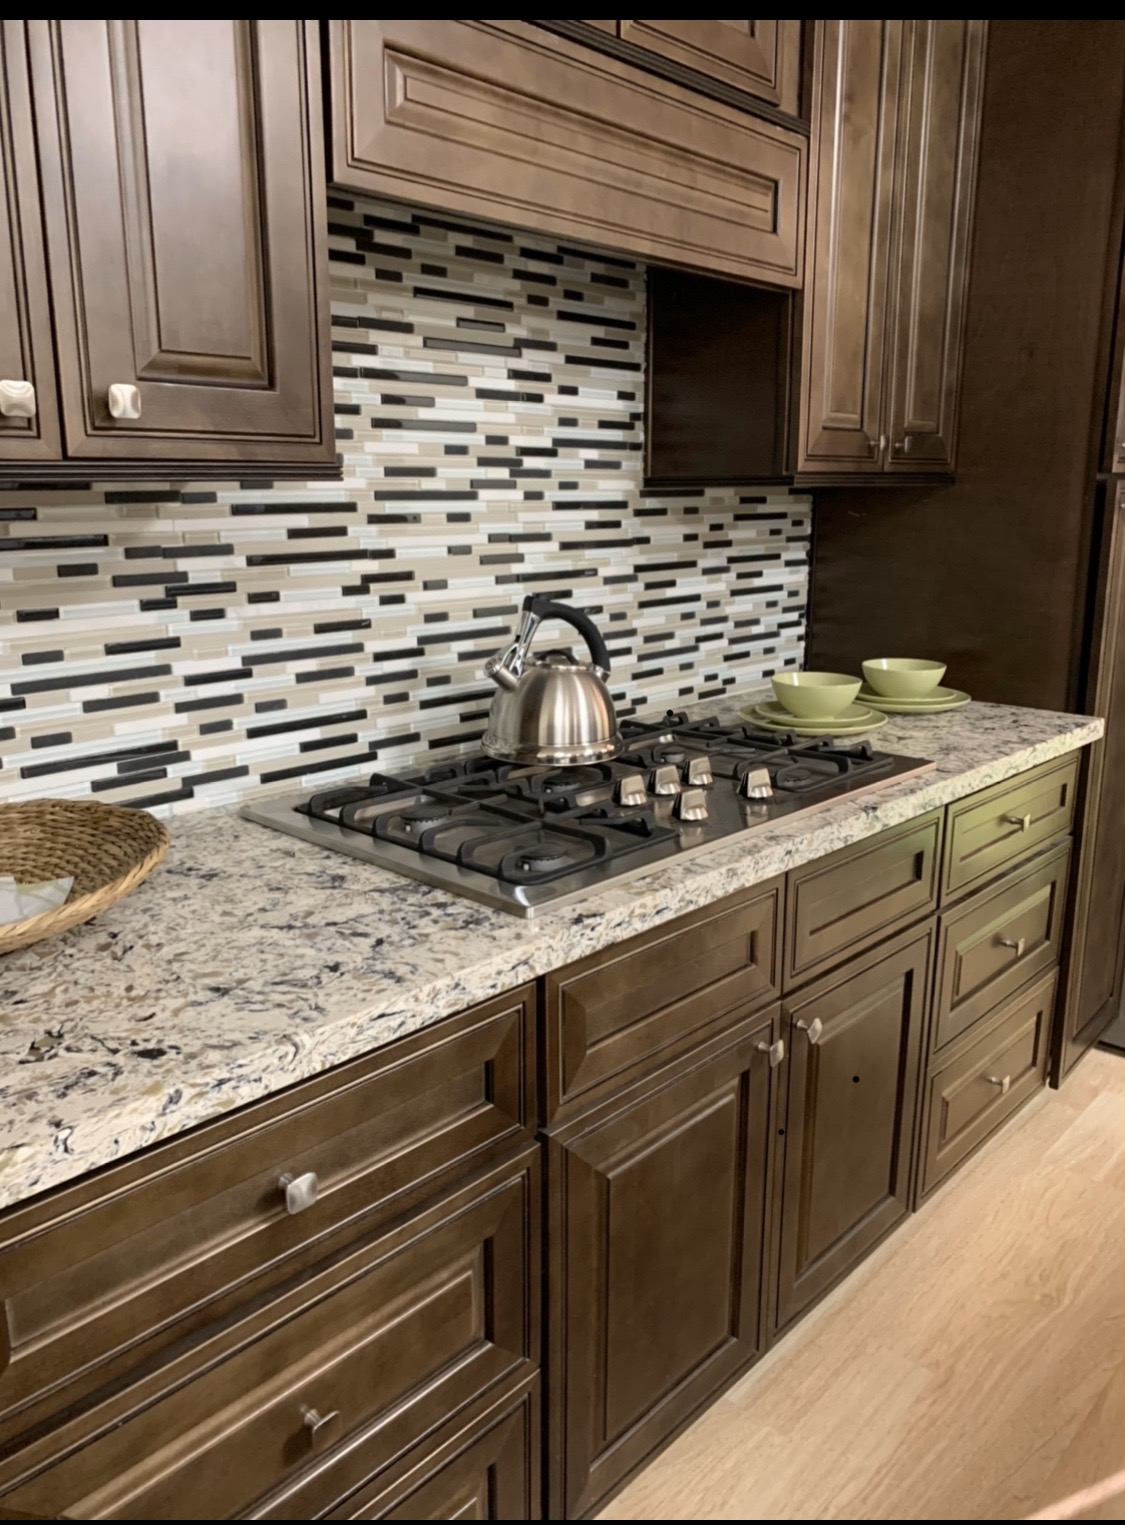 Brown cabinets with gray tile backsplash